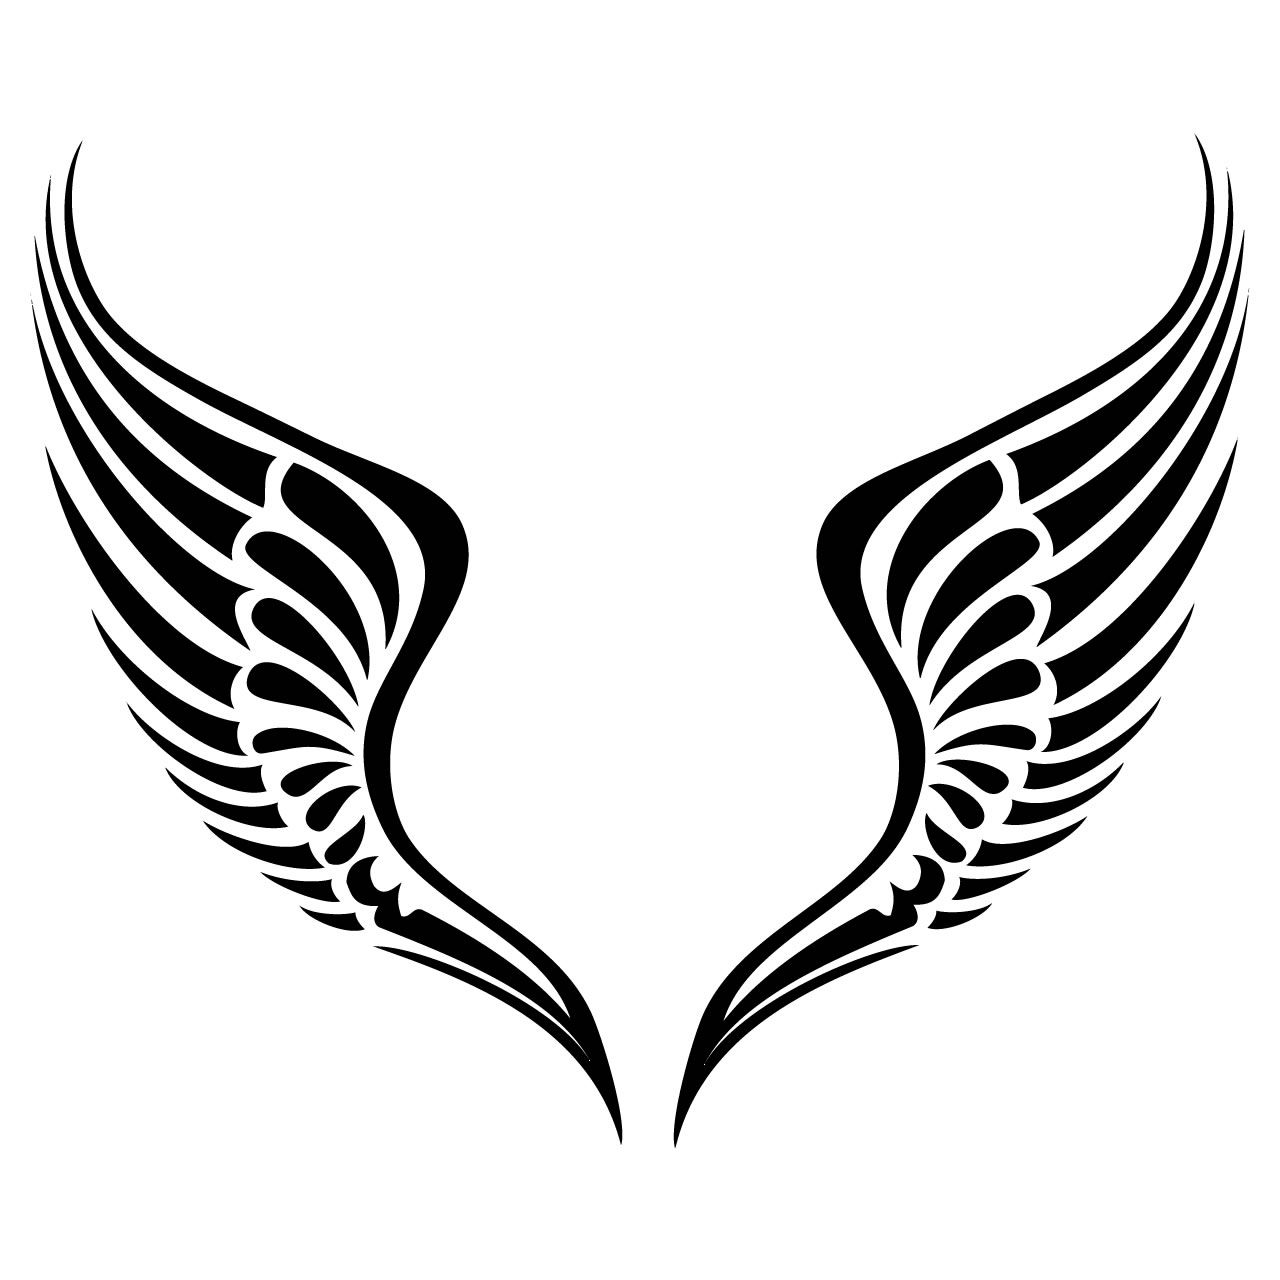 images for u003e angel wings with halo clipart rh pinterest co uk angel wings clip art for memorial angel wings clip art you can add a picture to